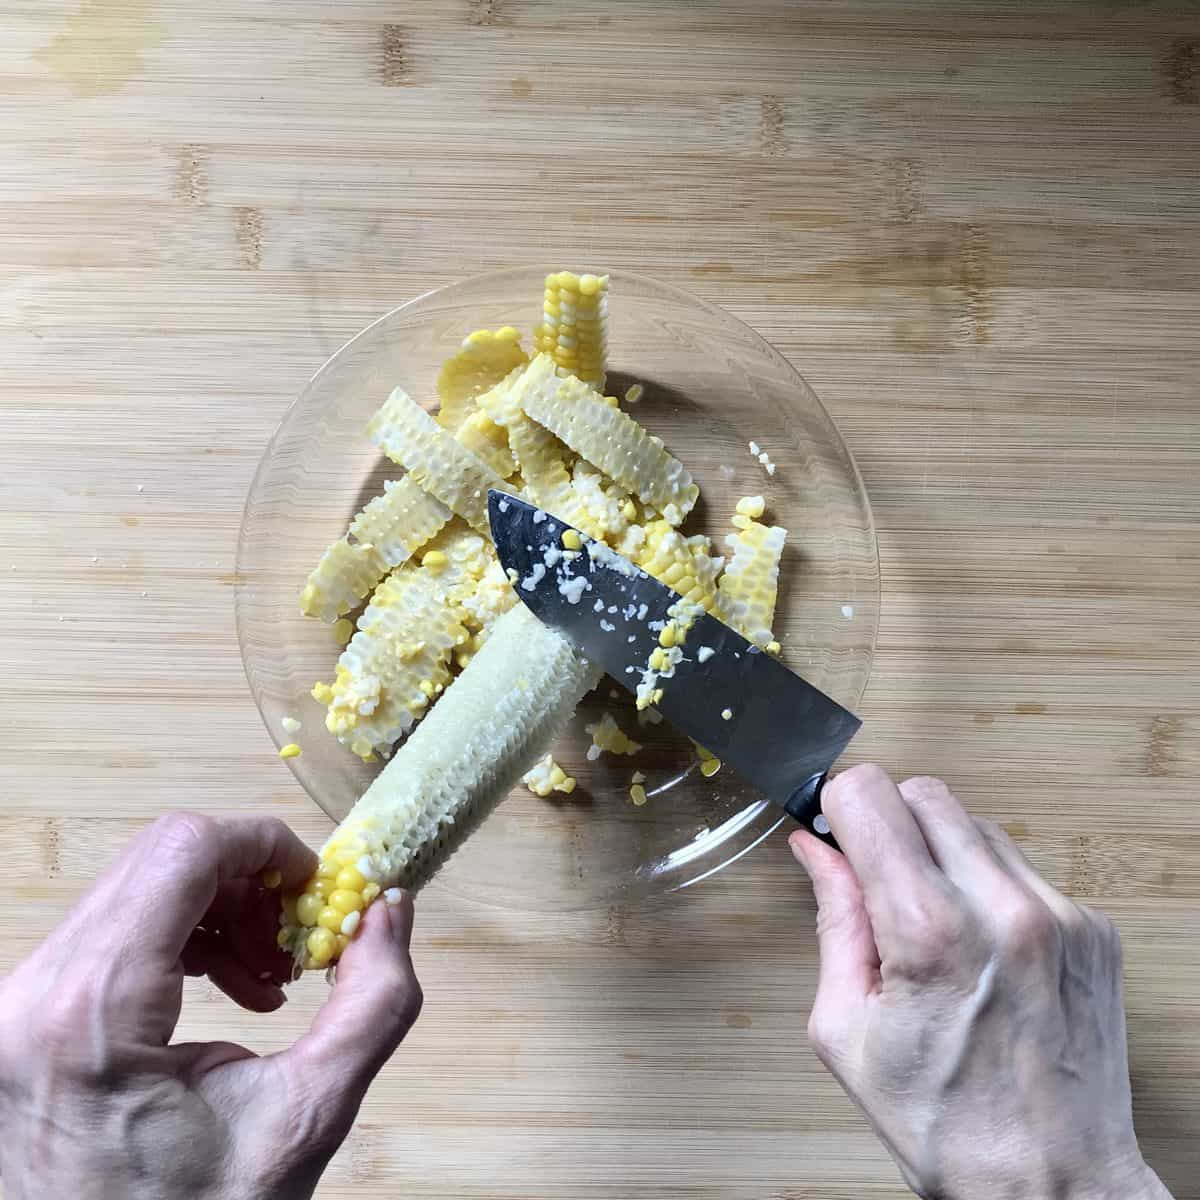 Corn kernels being milked from a corn cob with the back of a knife.